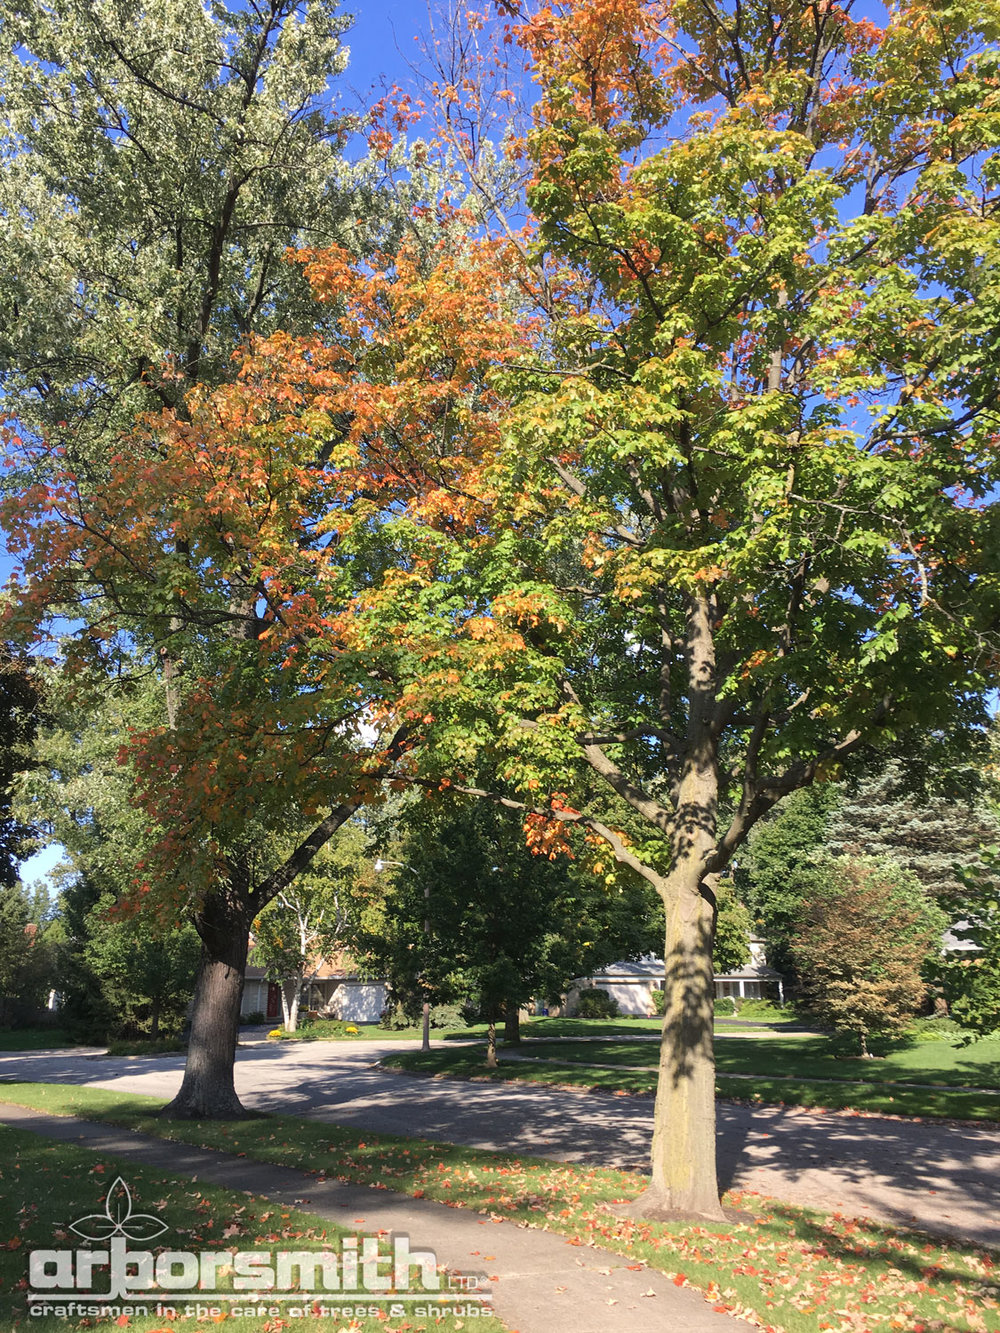 Early fall color on stressed trees;  photos by Lesley Bruce Smith